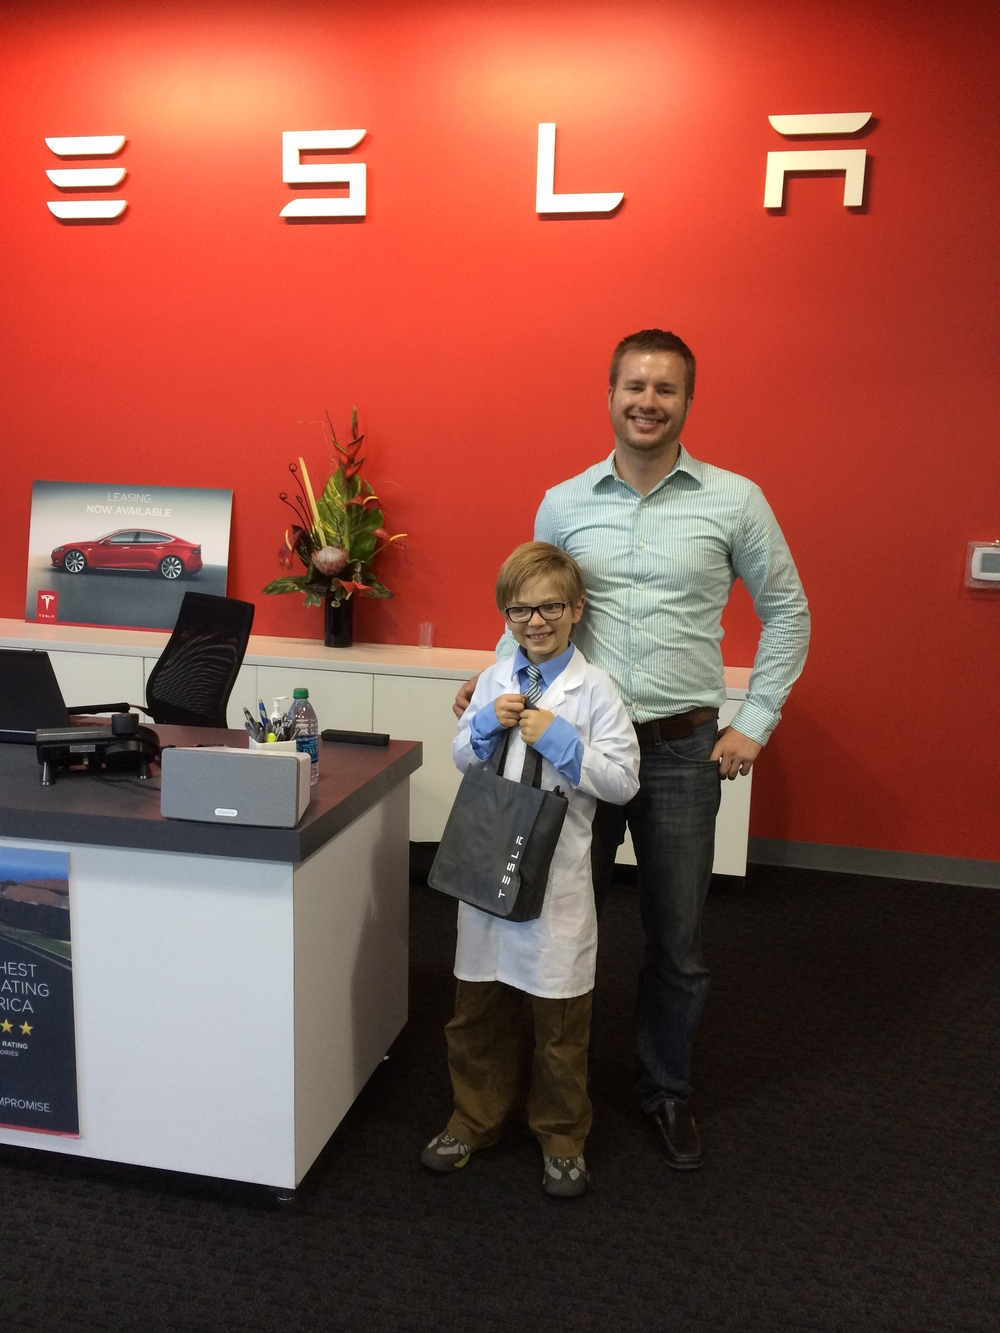 Ian Painter was our tour guide - and he sent Elliot off with some prime Tesla swag.